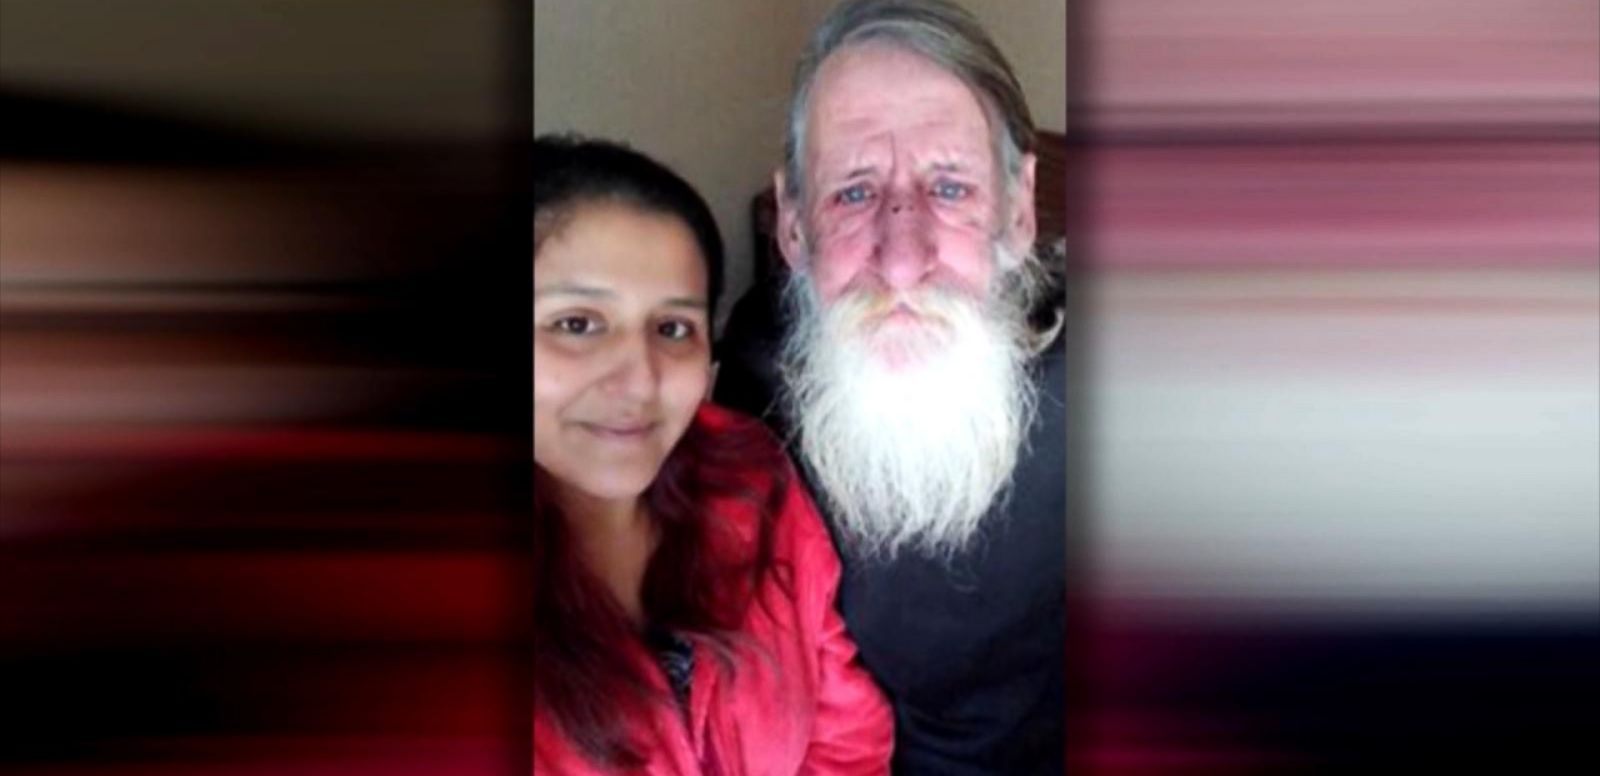 VIDEO: Woman Uses Scratch-Off Prize to Help Homeless Man